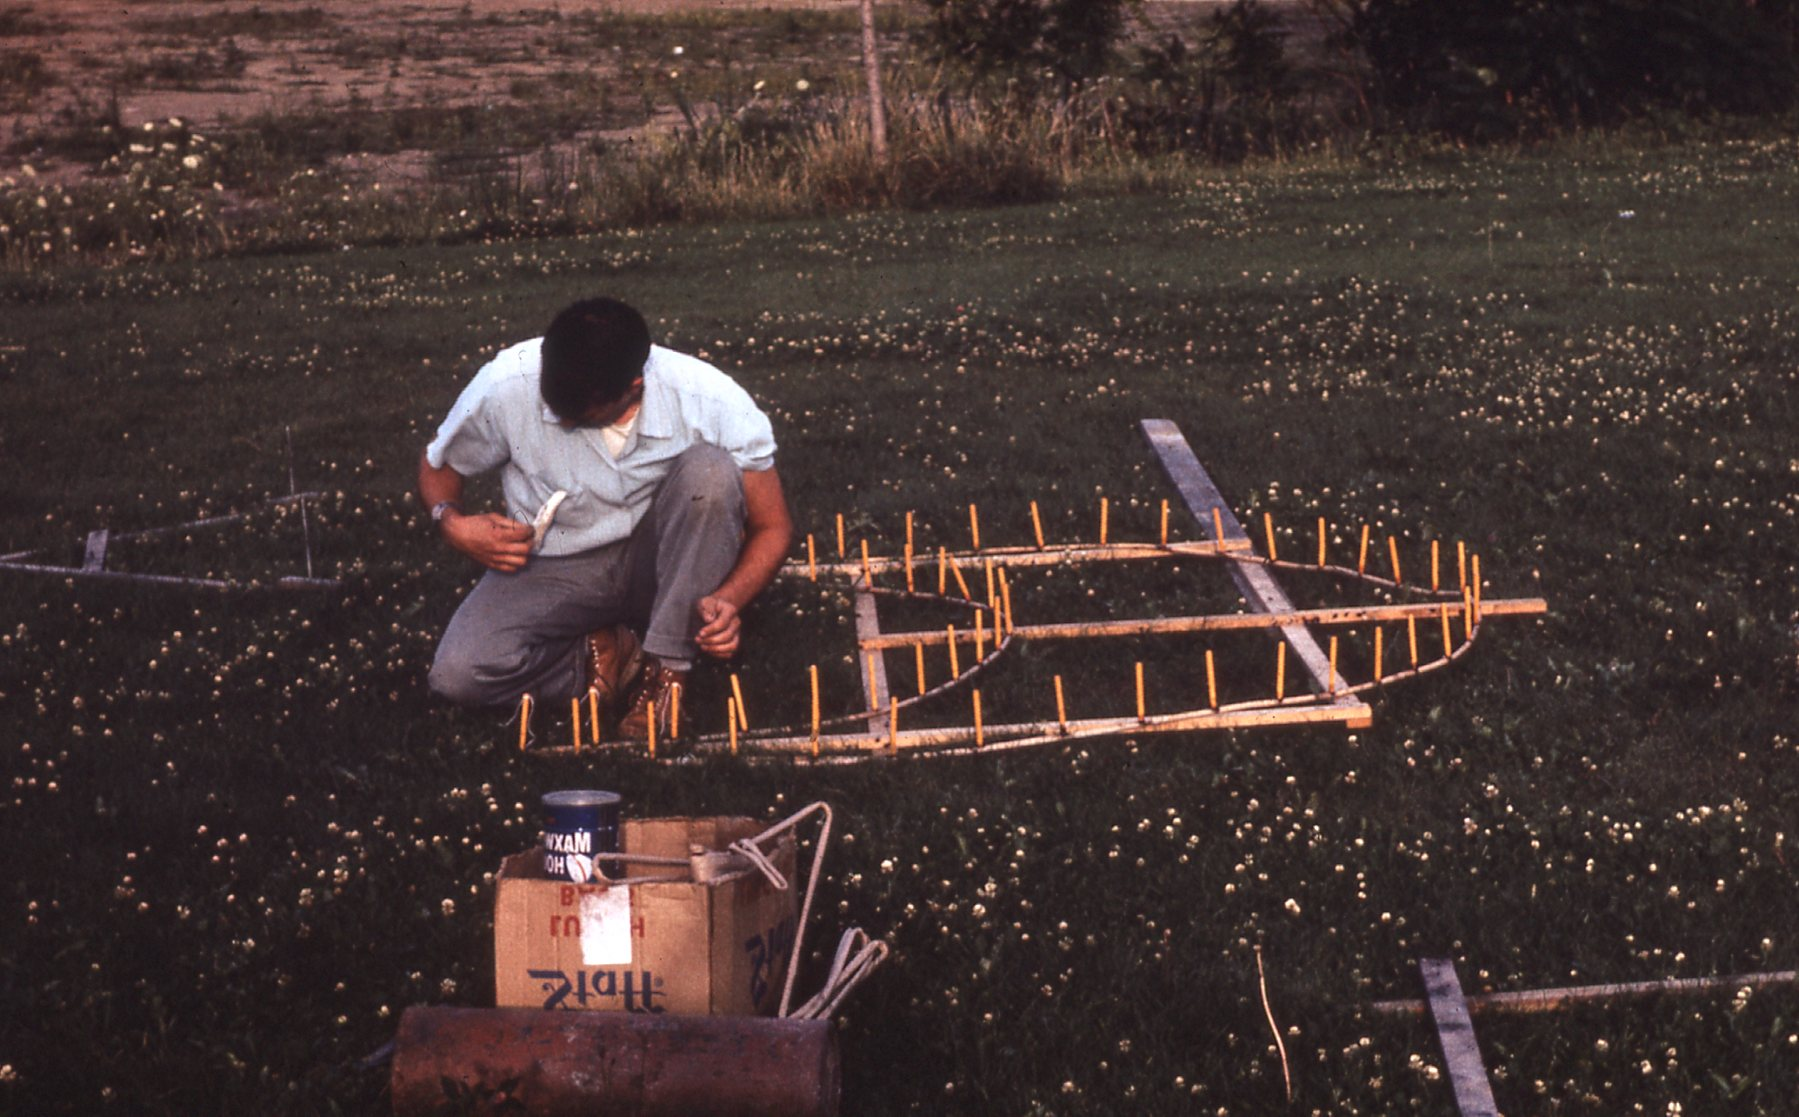 man assembling fireworks on ground